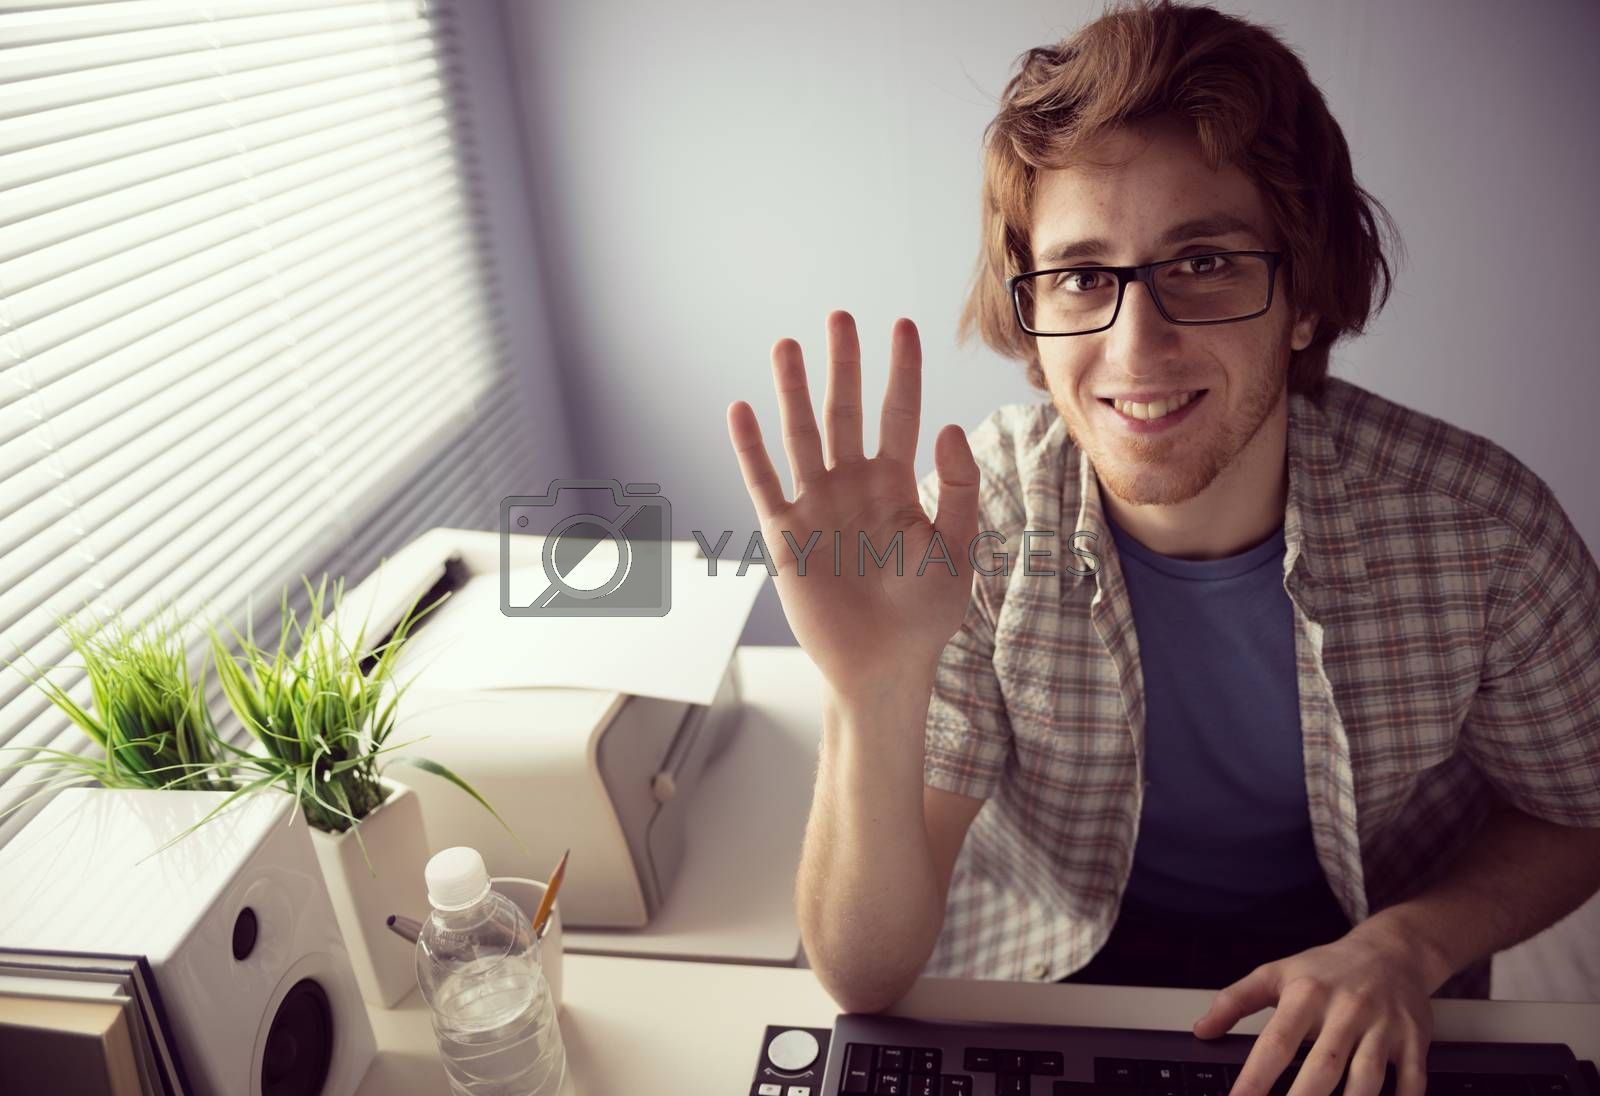 Young friendly guy smiling on web cam and waving hand.